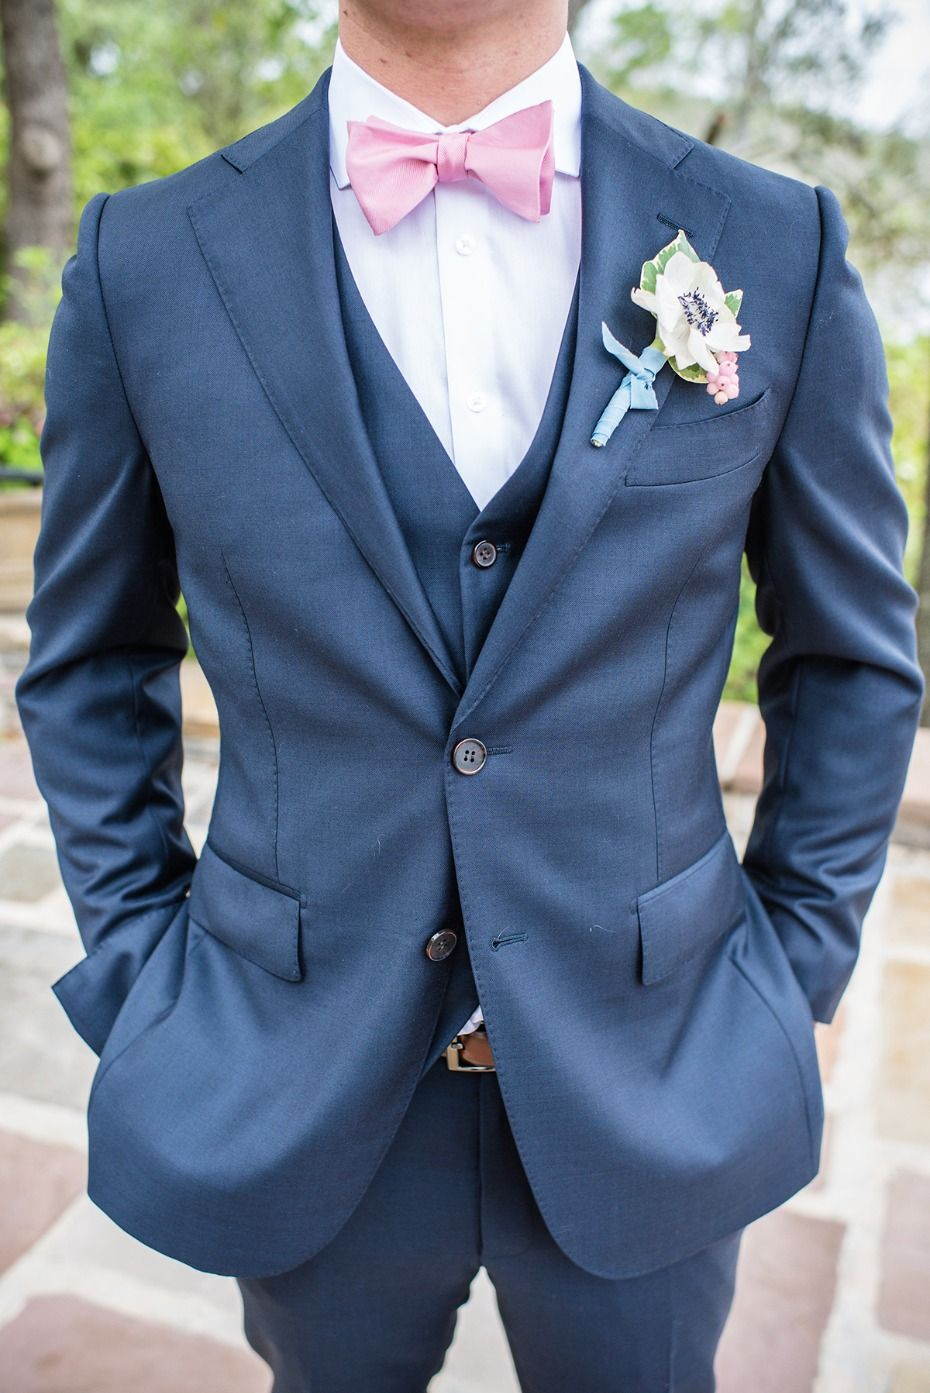 How To Have The Perfect Pastel Summer Wedding | Navy groom suits ...